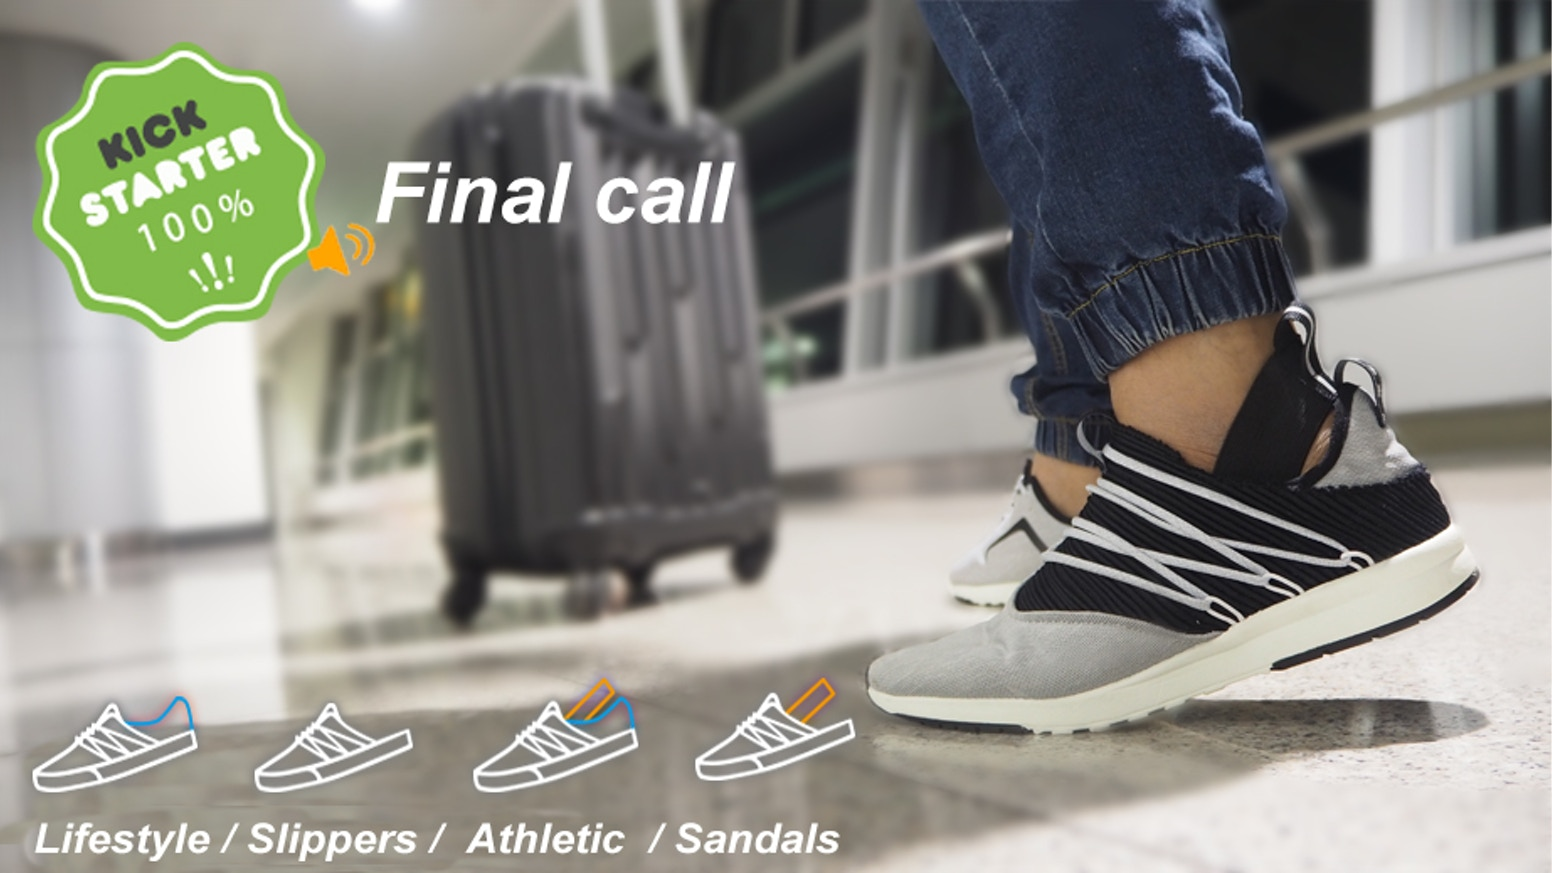 Footwear revolution, can be slippers, sandals, athletic shoes or lifestyle shoes! in anytime, anywhere!